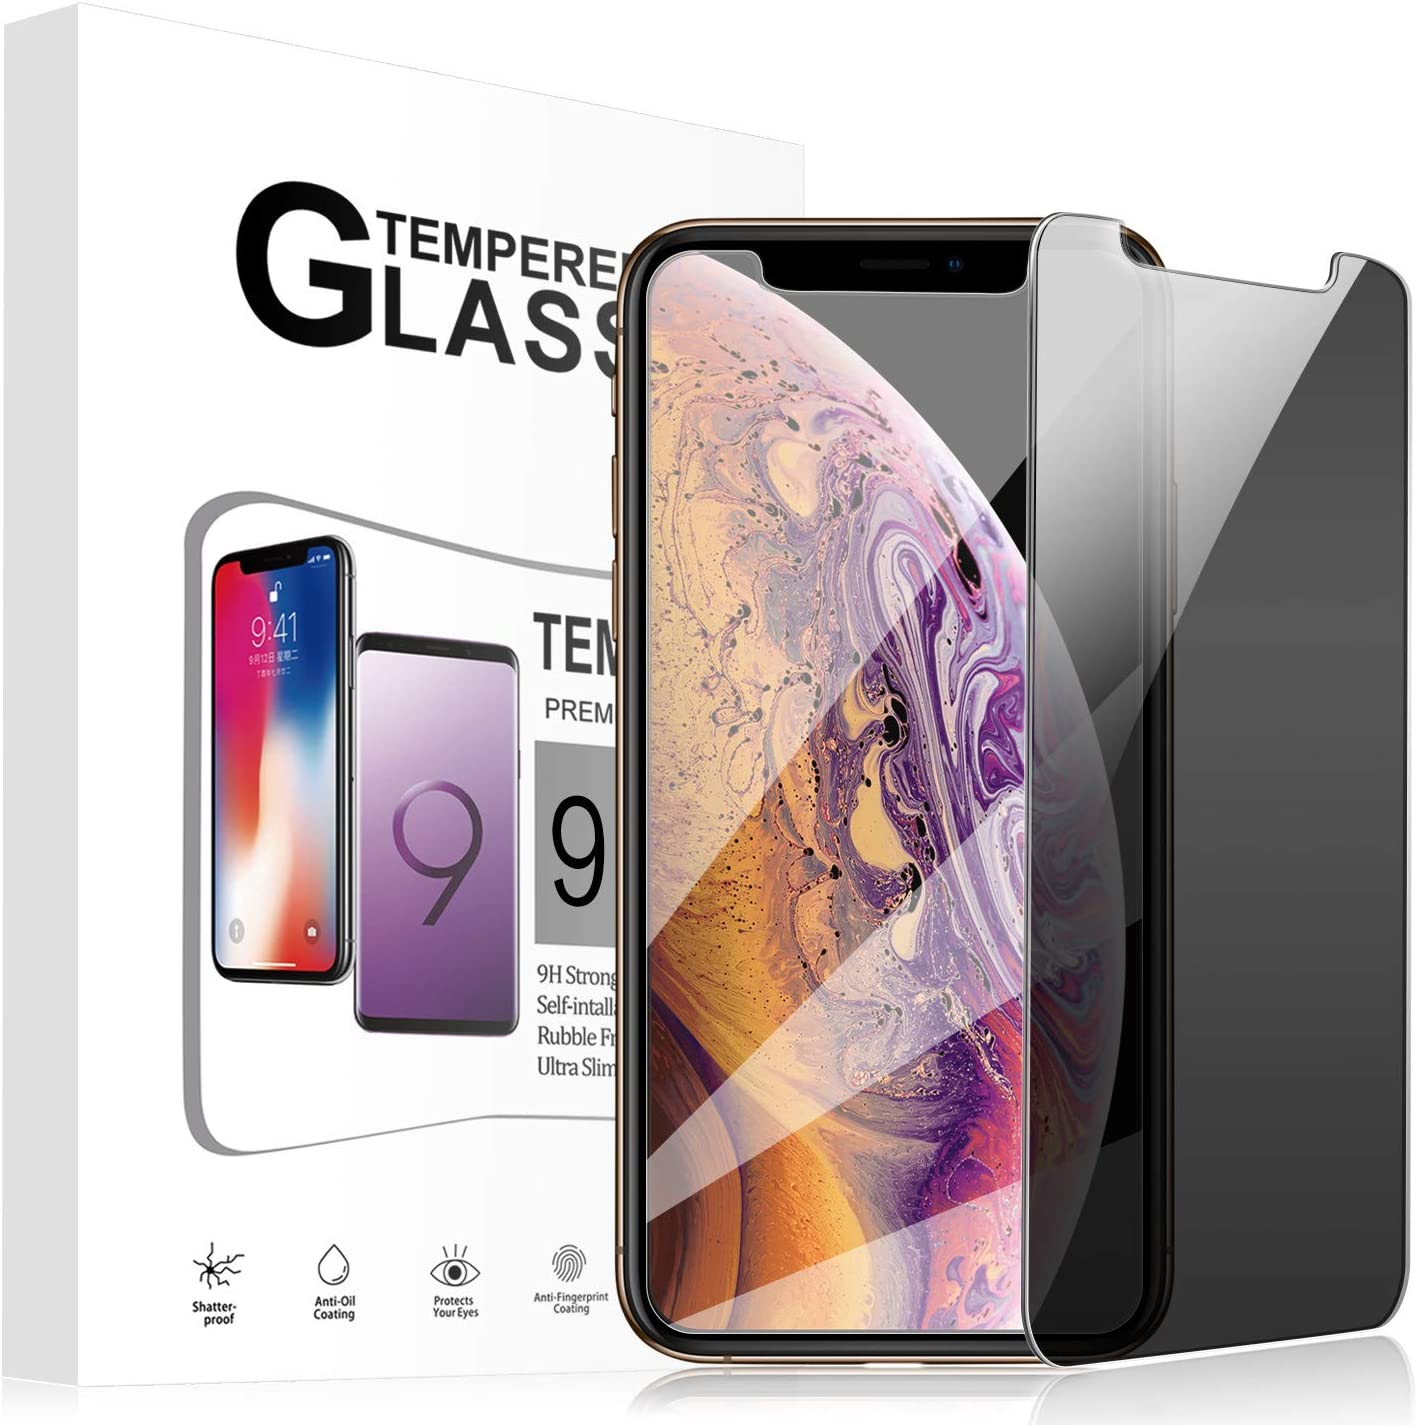 ANFEEL Full Privacy Tempered Glass for iPhone Xs Max Screen Protector for iPhone Xs Max Anti Spy Peeping Film 3D Easy to Install Scratch Proof Fingerprint Free Bubbles 6.5 Inch 10-Pack